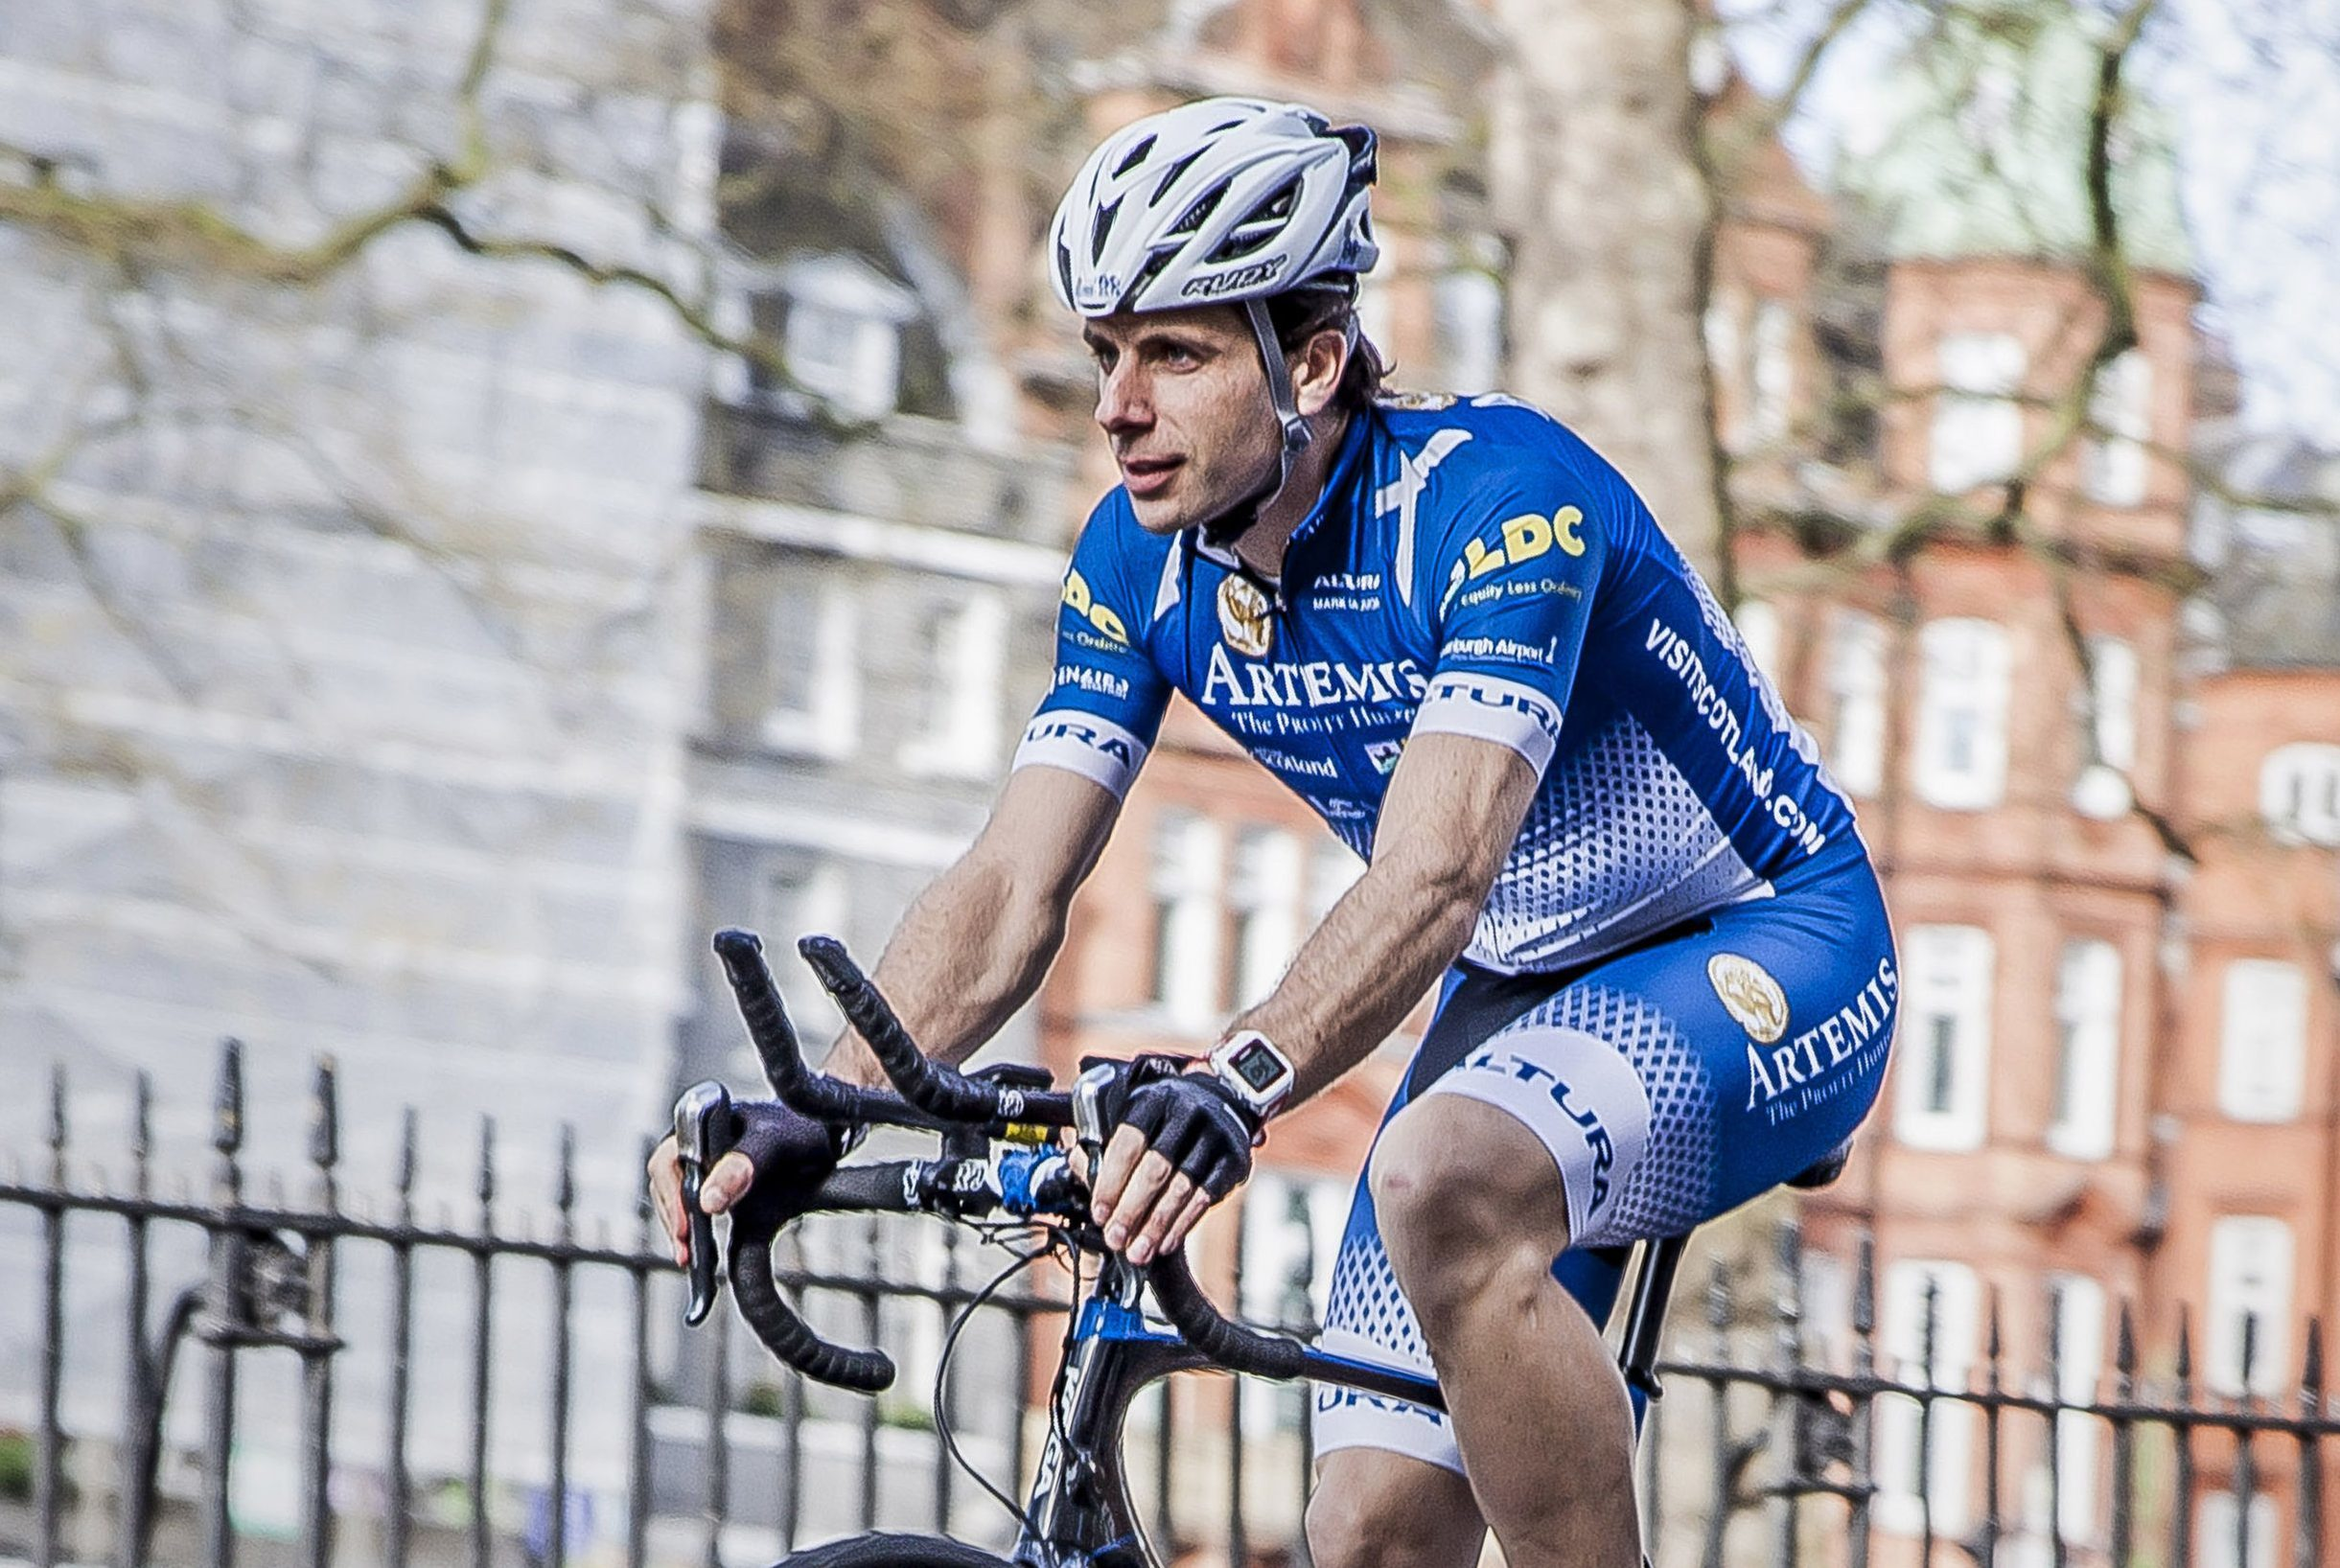 Mark Beaumont, who is on track to reach the halfway mark of his attempt to cycle around the world in record time. (Artemis World Cycle/PA Wire)